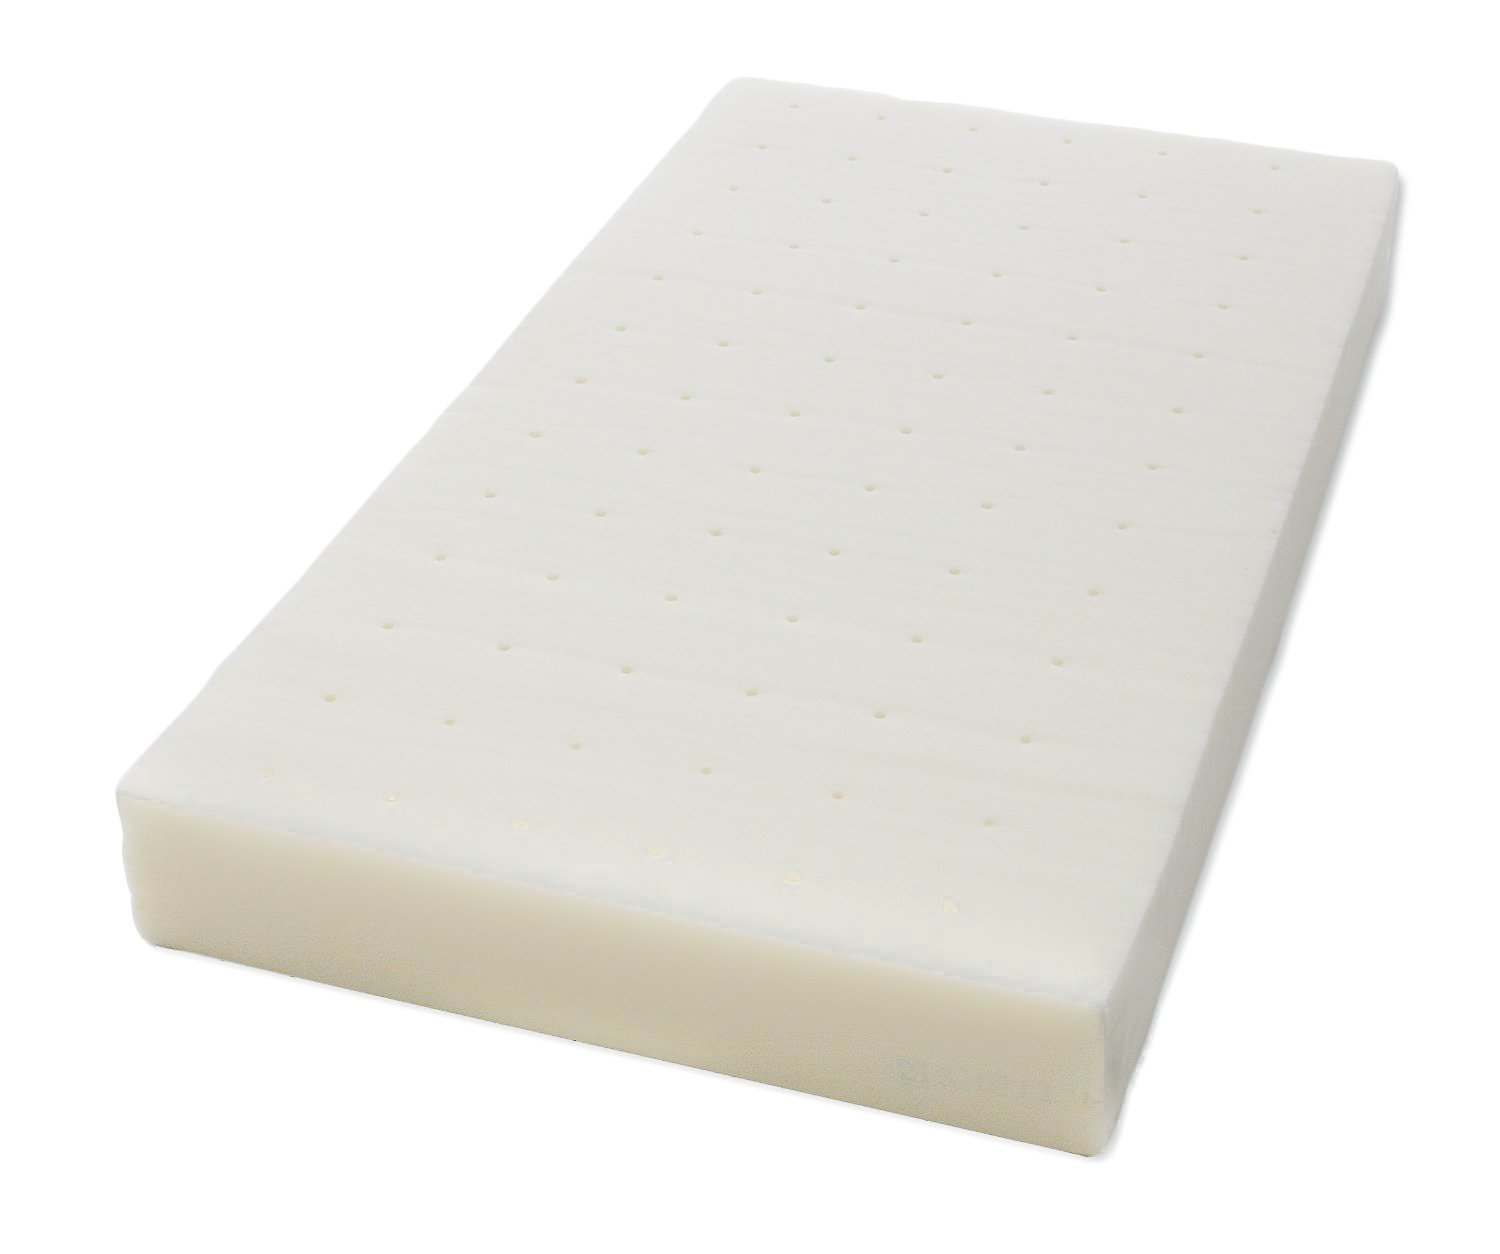 Memory Foam Crib Mattress Topper With Waterproof Cover Milliard Bedding The Ultimate Sleep